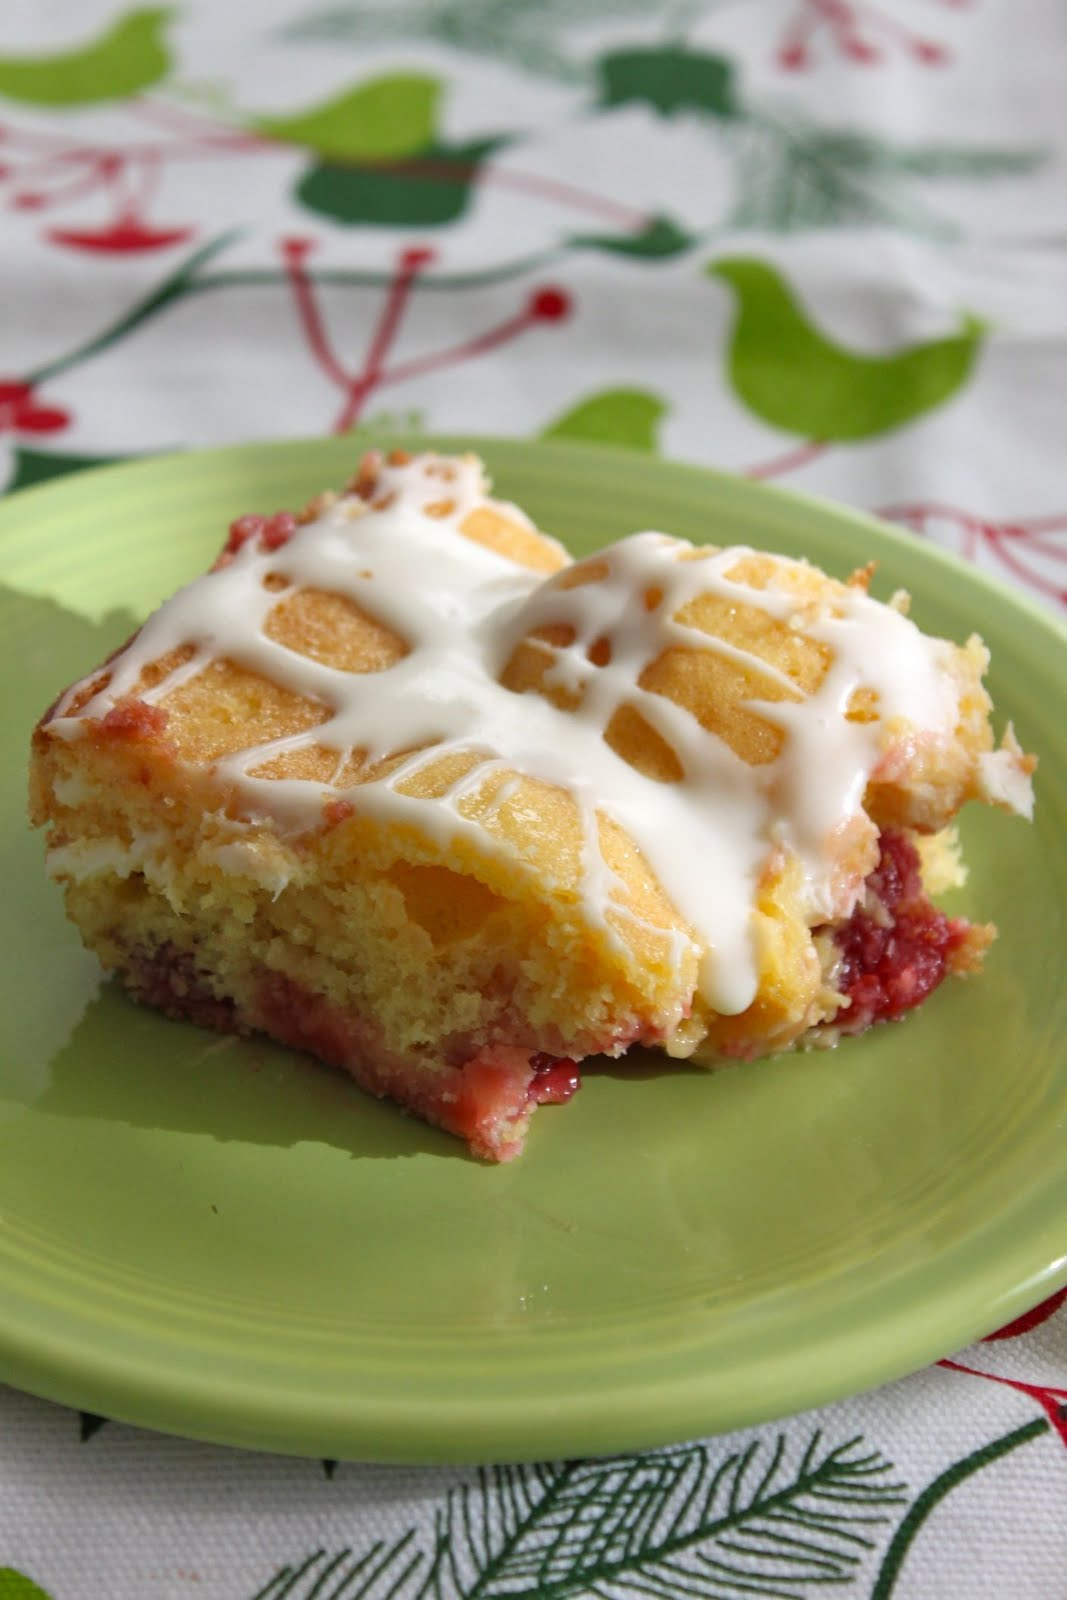 Baked Perfection Cherry Almond Coffee Cake With Cream